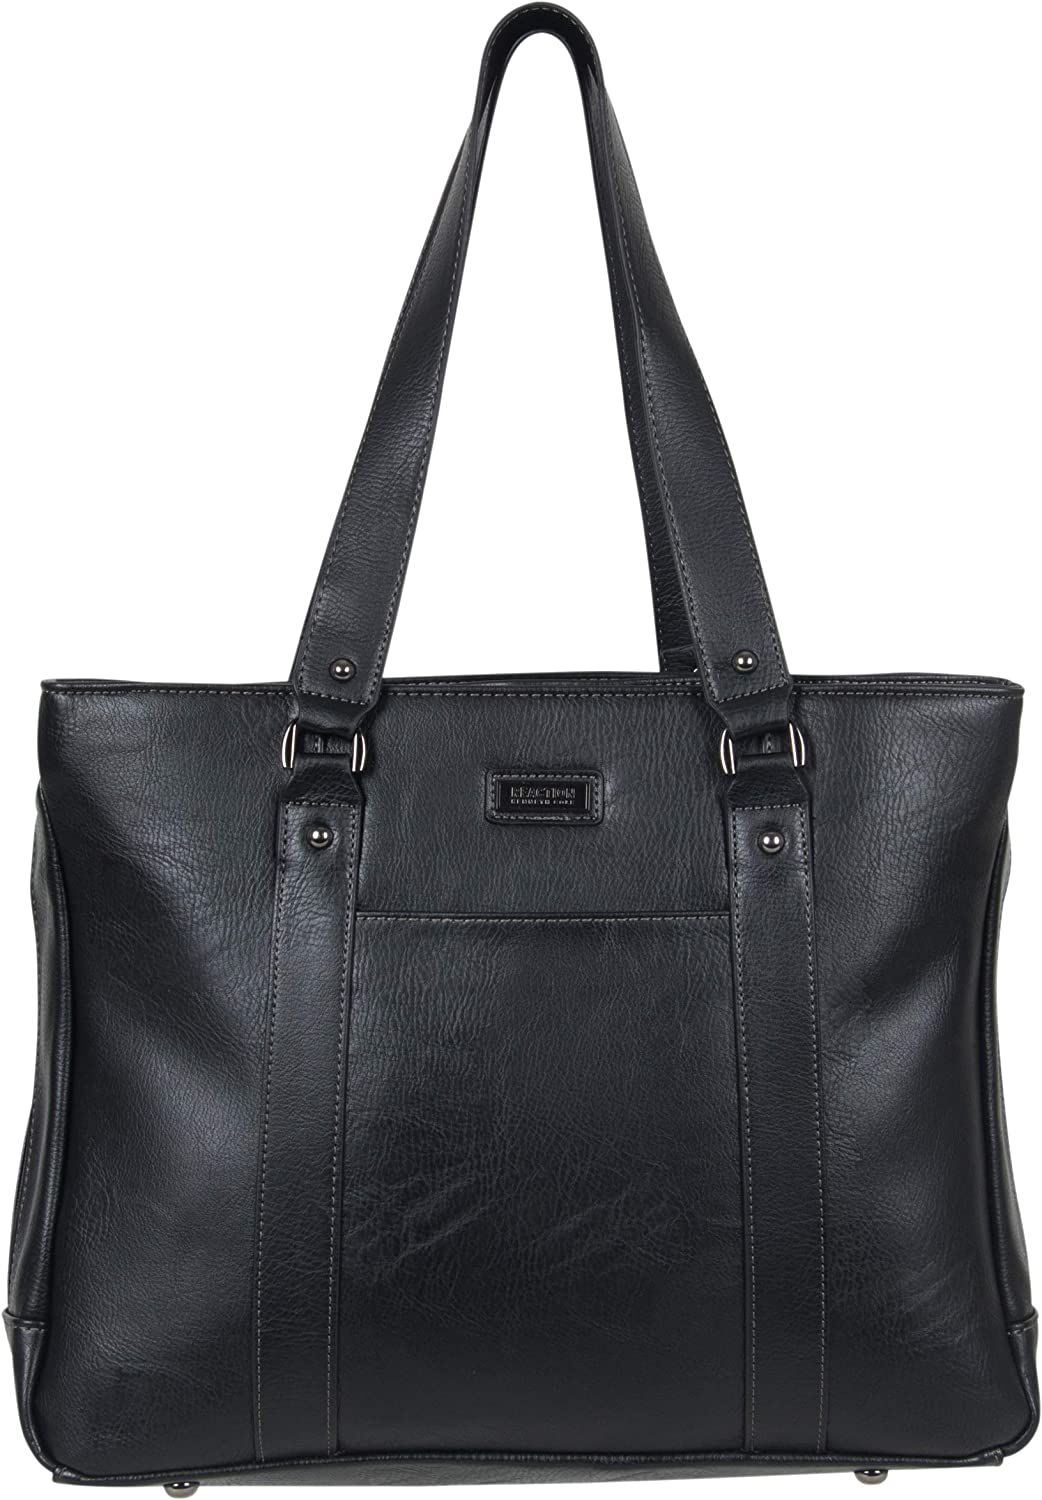 """Kenneth Cole Reaction Women's Hit Pebbled Faux Leather Triple Compartment 15"""" Laptop Business Tote, Black, One Size"""